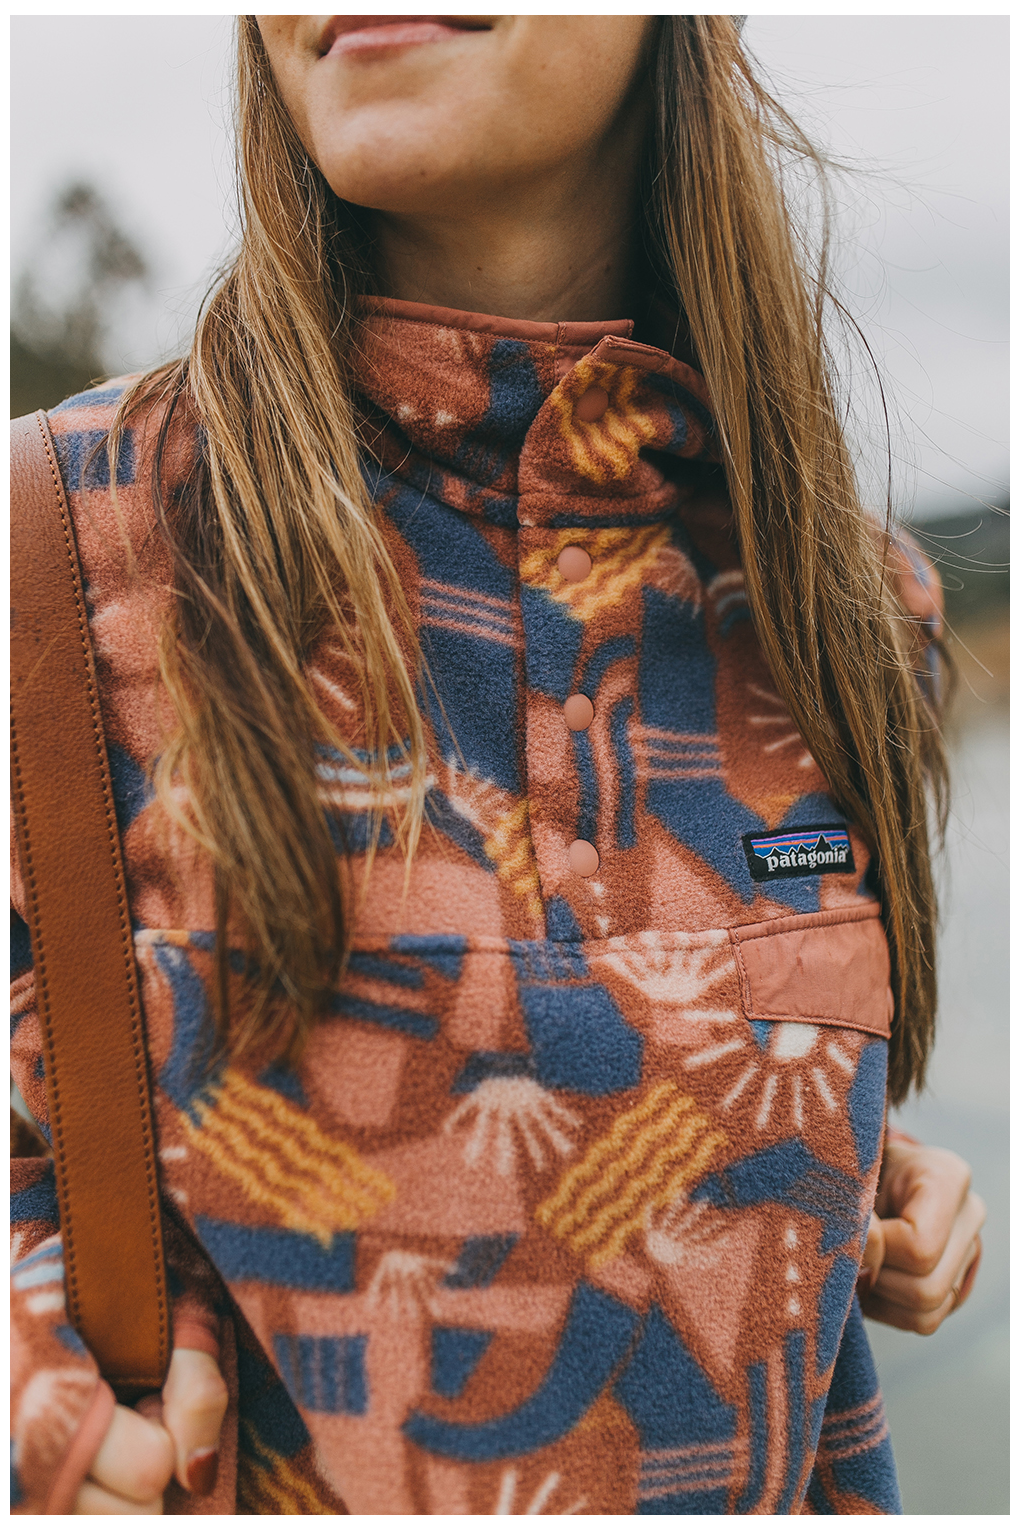 patagonia fleece pullover outfit